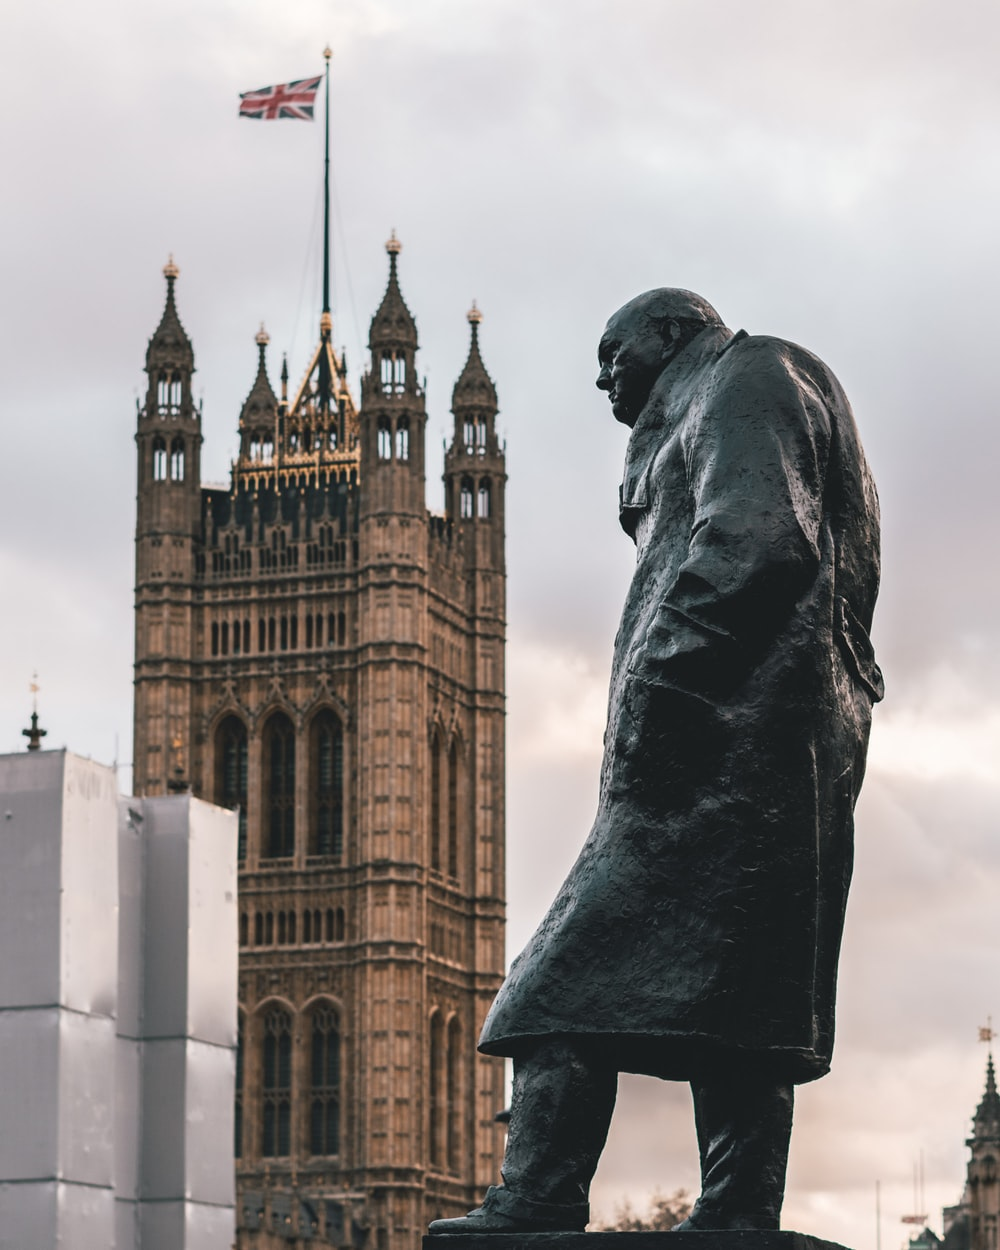 man wearing coat statue showing building with flag